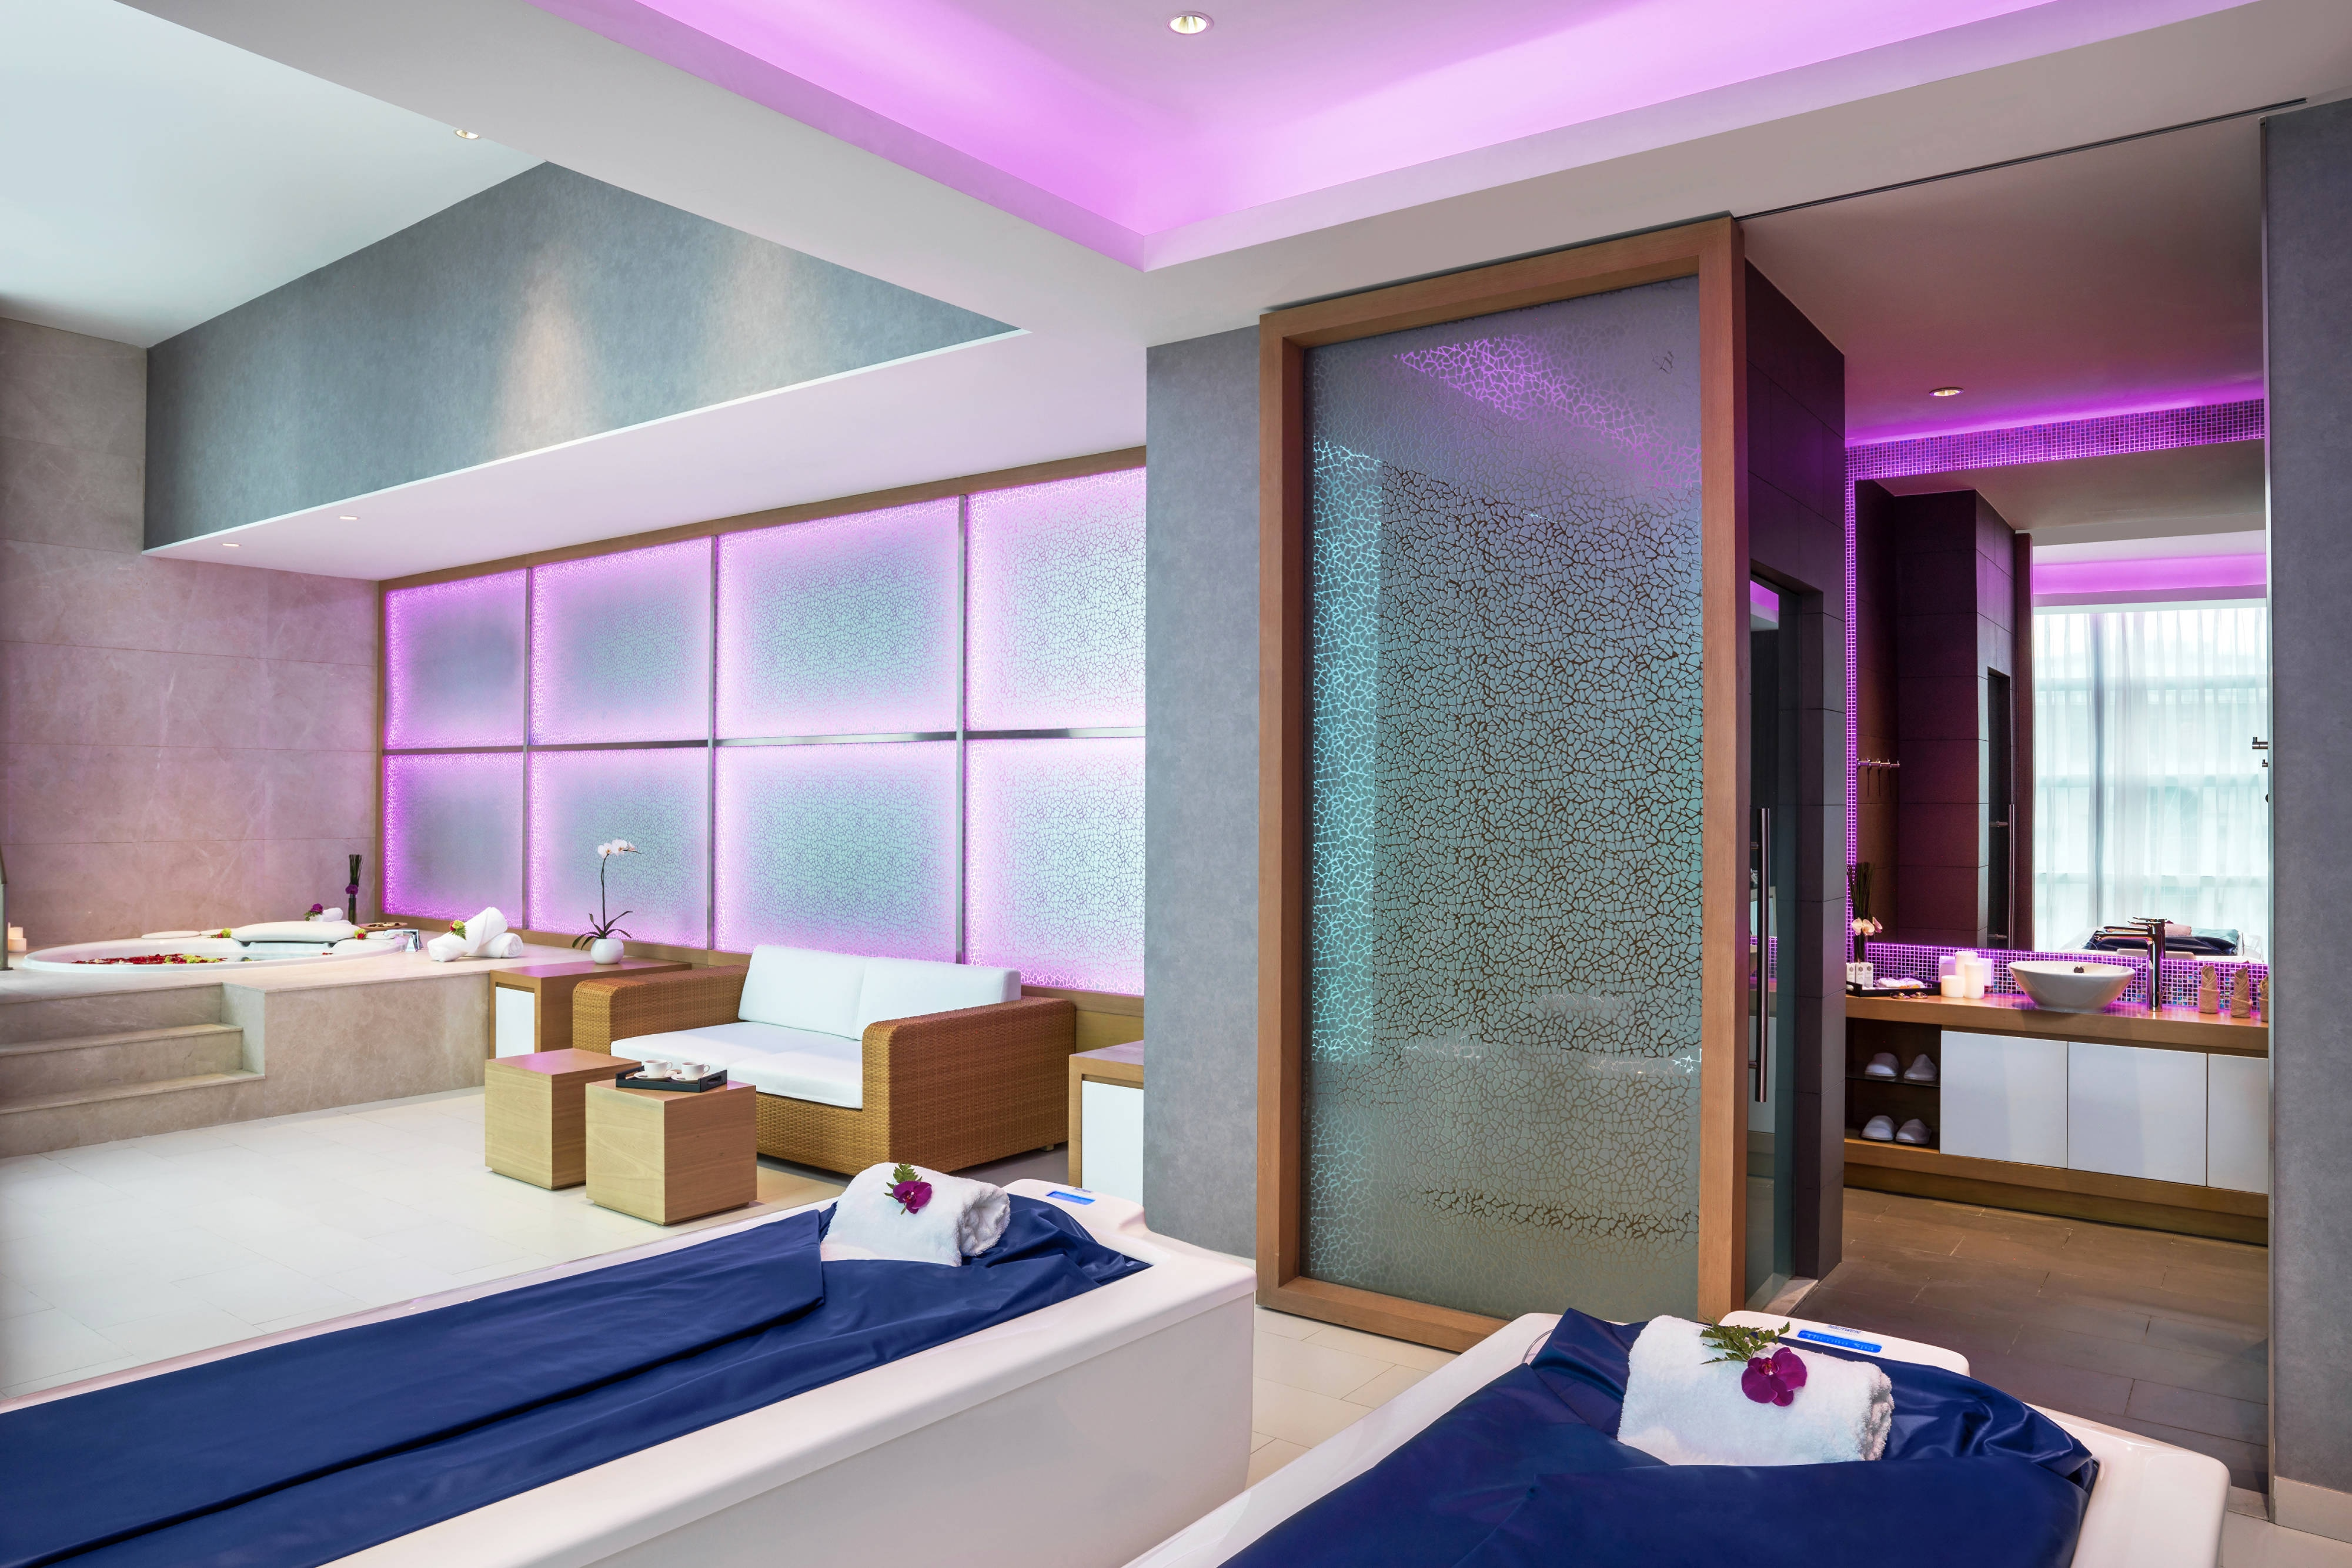 Iridium Spa - Treatment Room